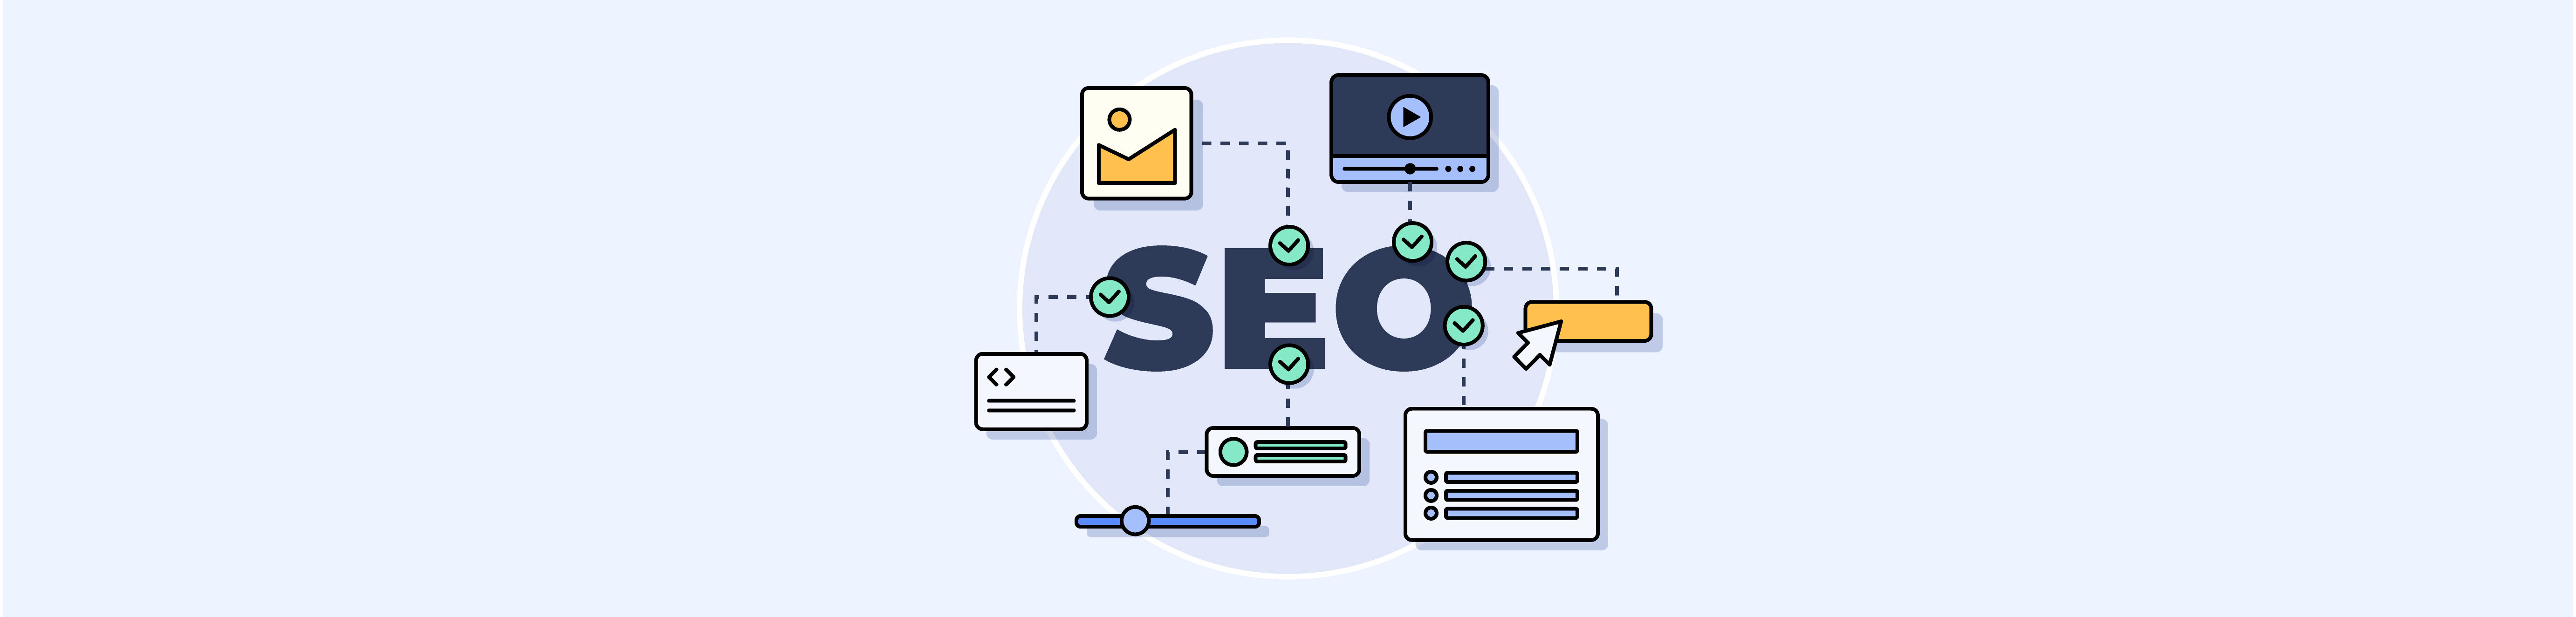 Web design and how it affects your site SEO